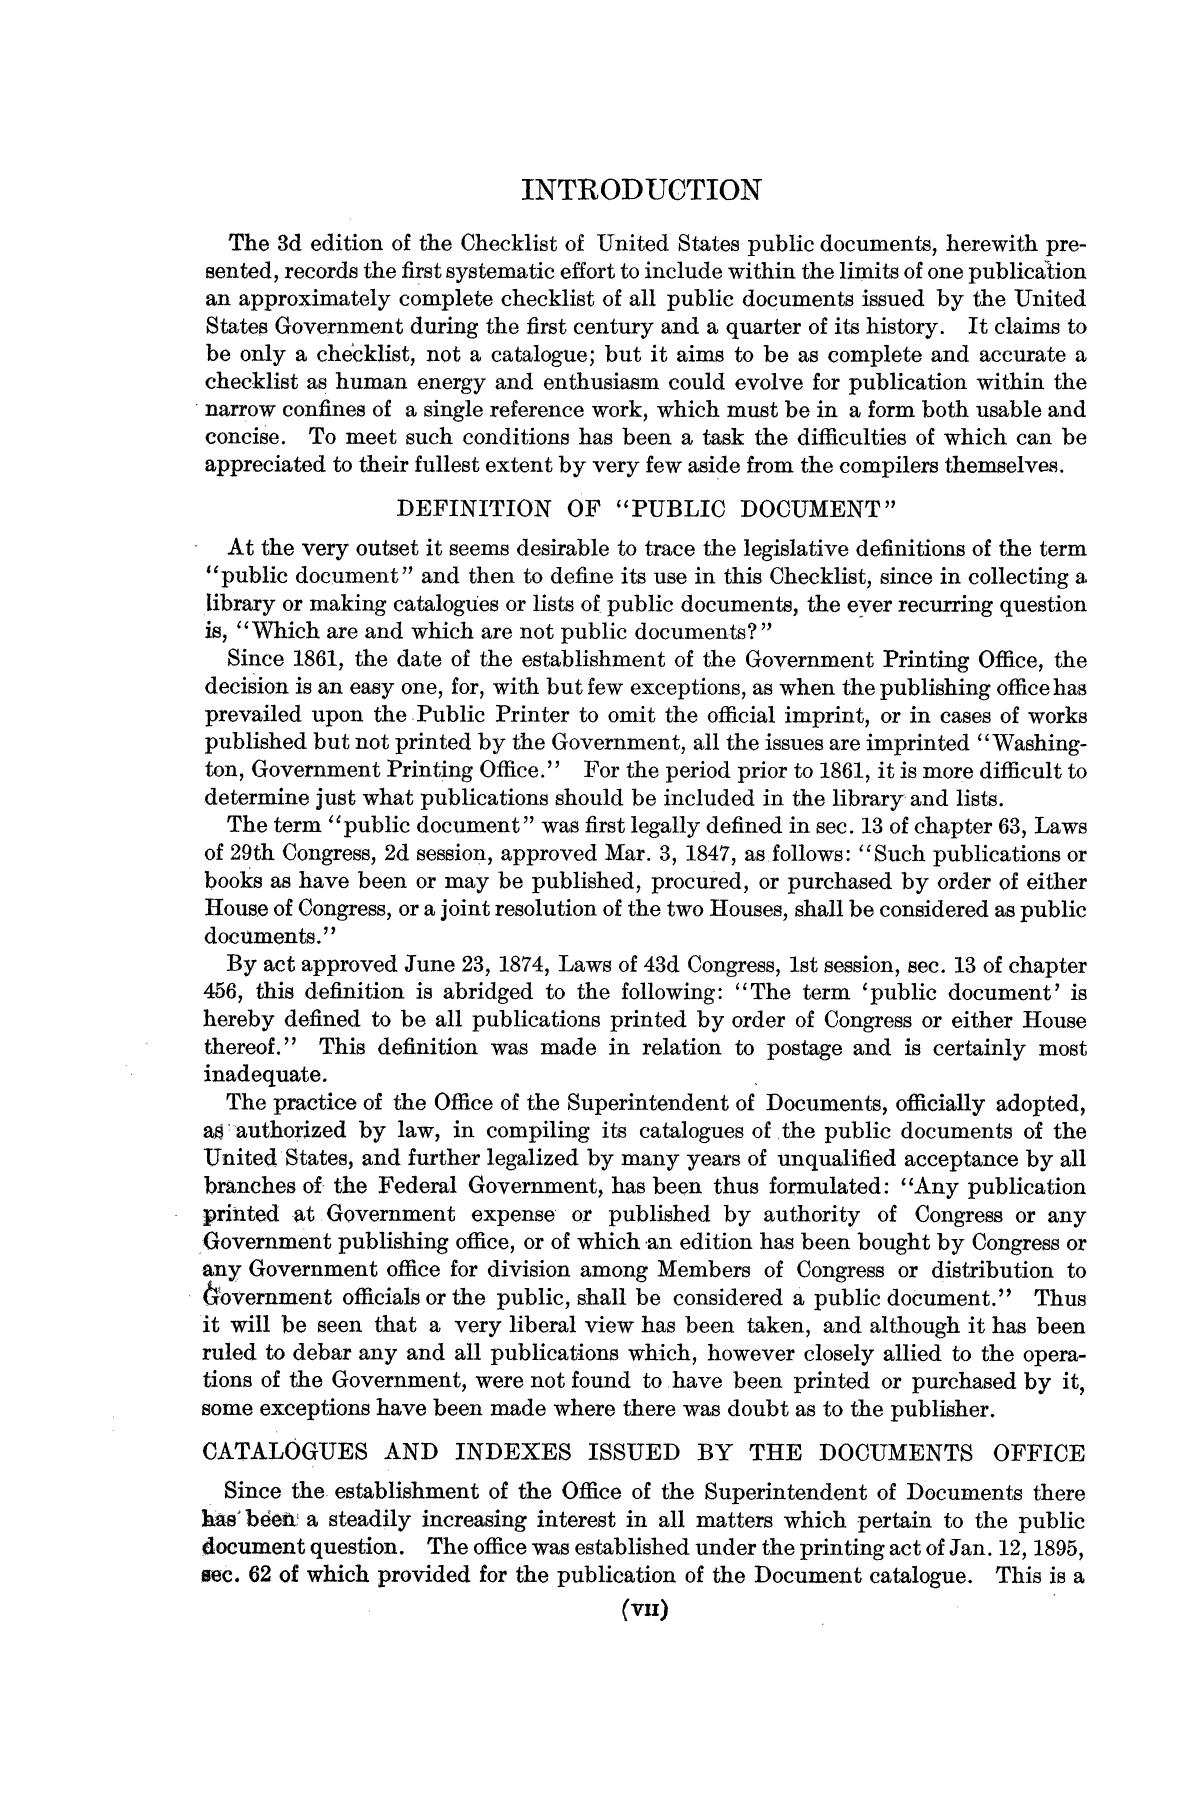 Checklist of United States Public Documents, 1789-1909, Third Edition Revised and Enlarged, Volume 1, Lists of Congressional and Departmental Publications                                                                                                      VII